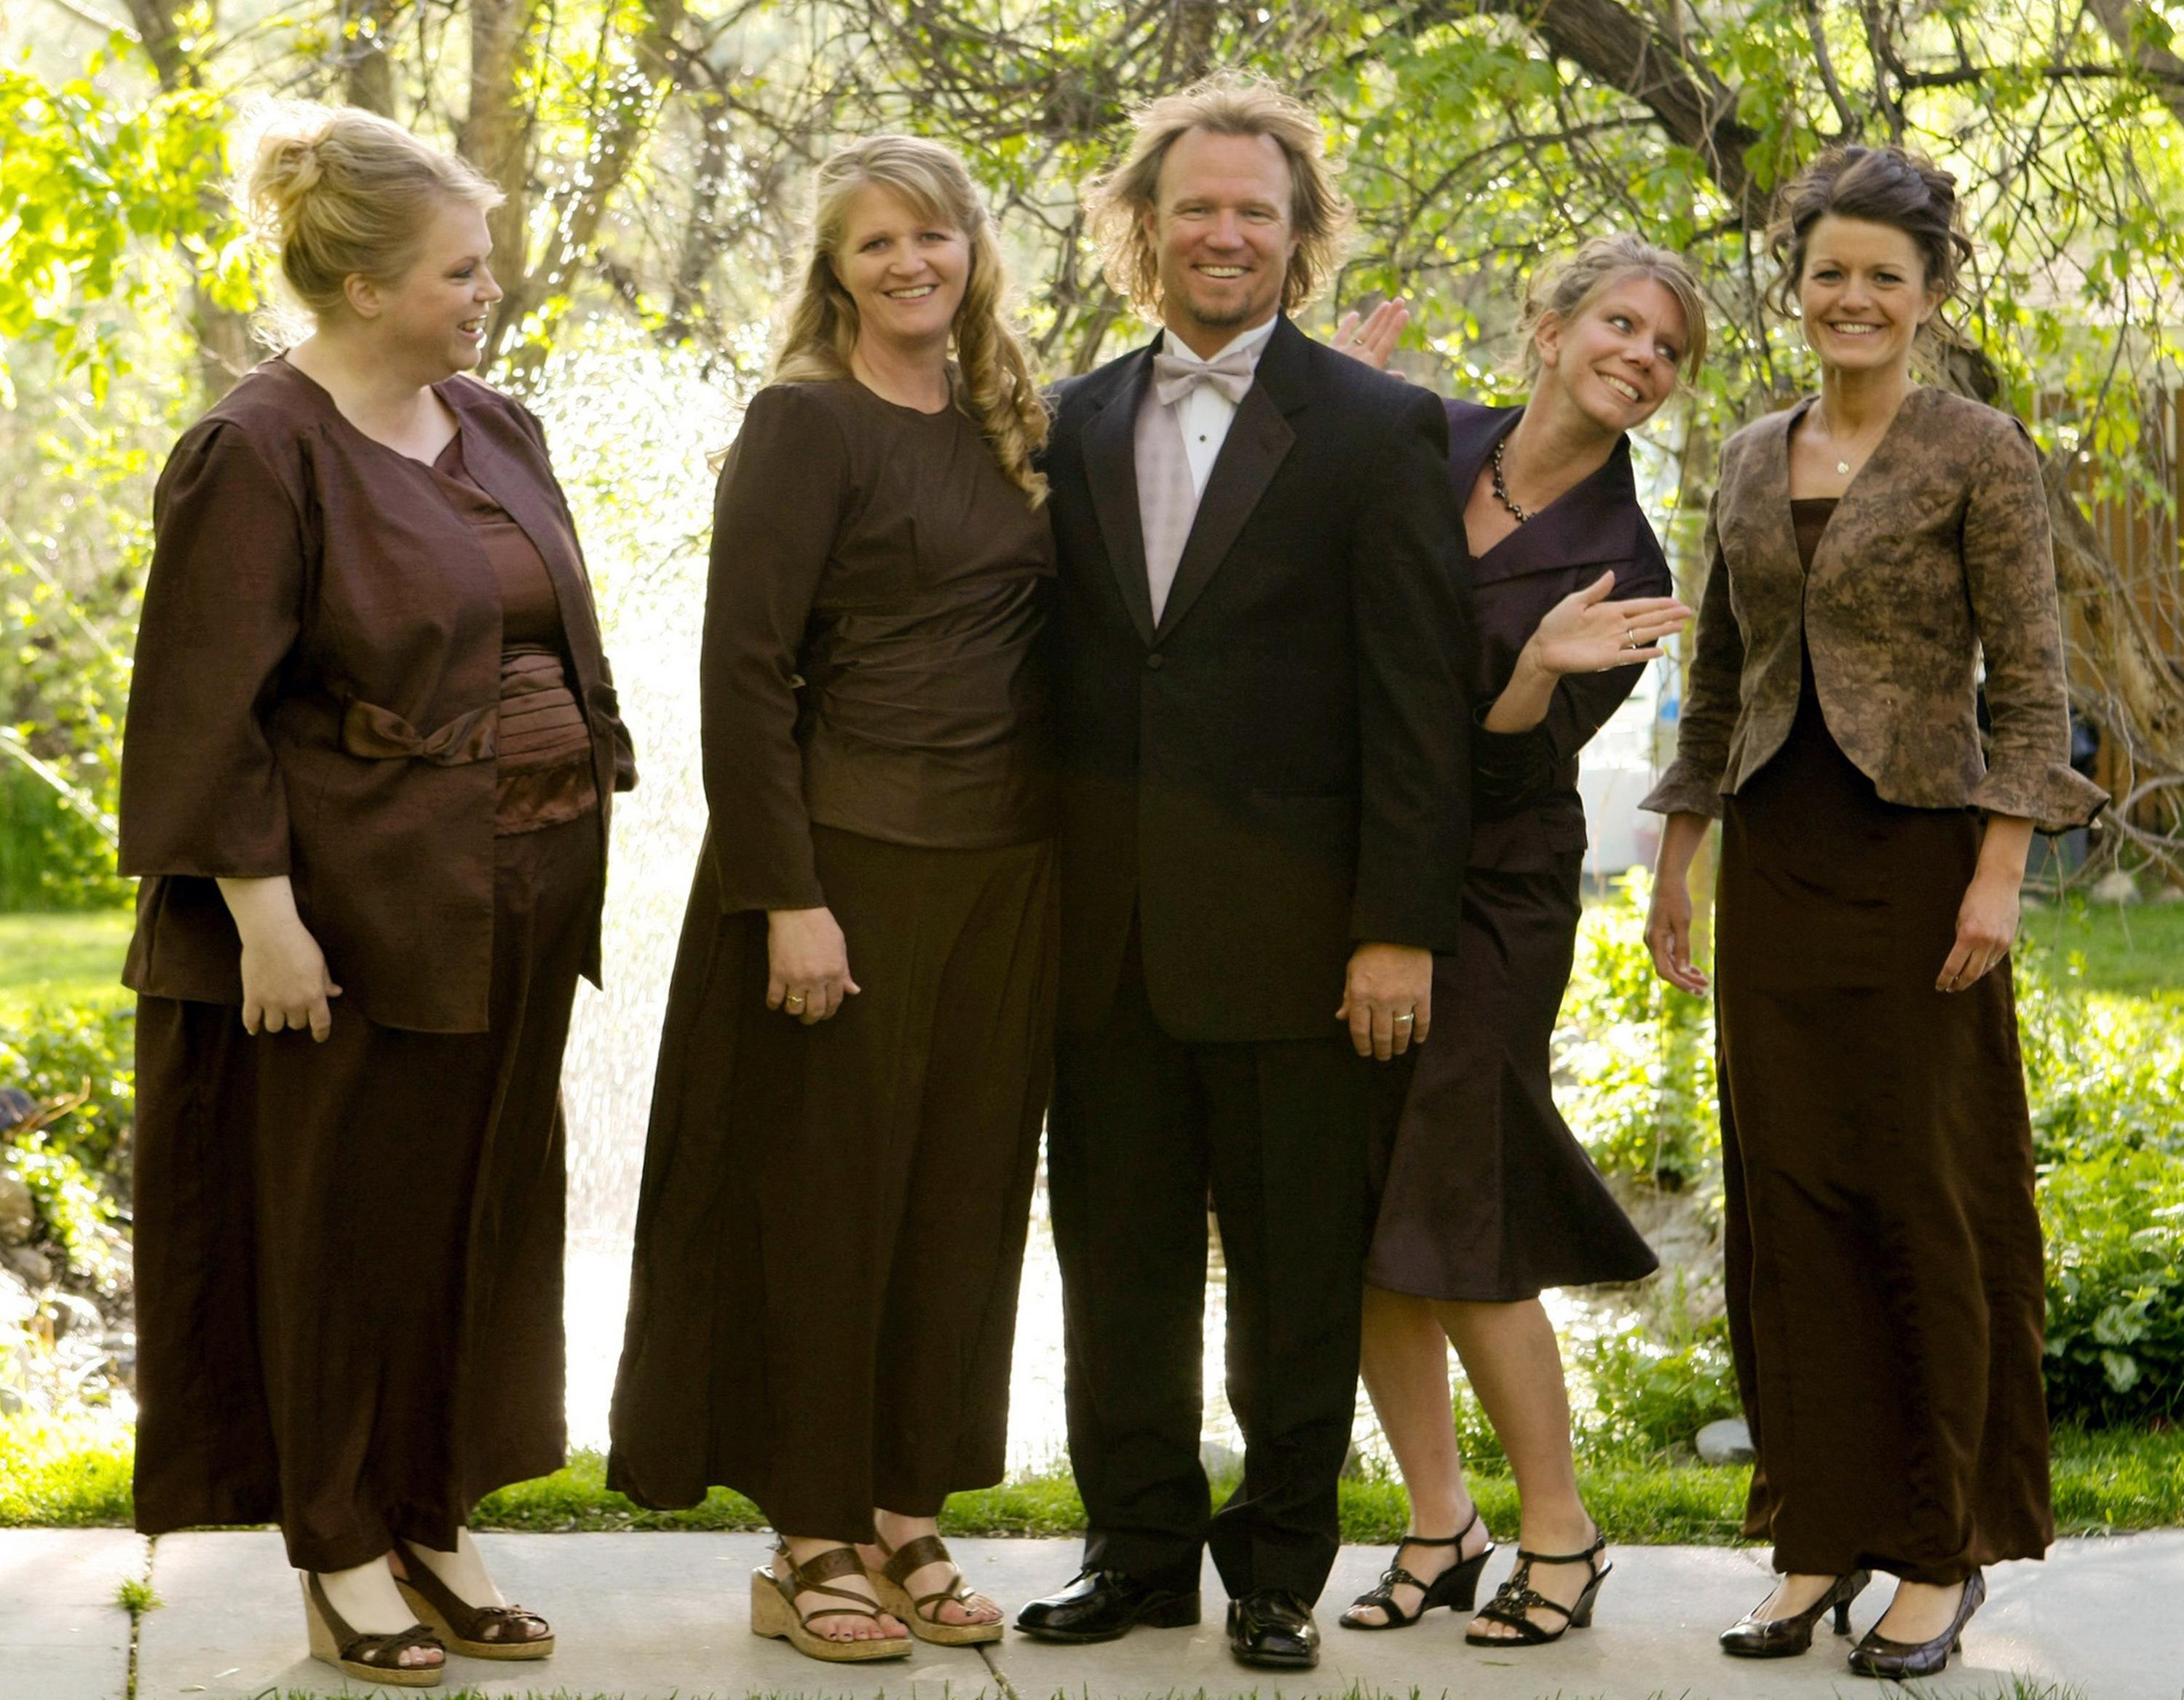 """FILE - In this undated file photo provided by TLC, Kody Brown, center, poses with his wives, from left, Janelle, Christine, Meri, and Robyn in a promotional photo for TLC's reality TV show, """"Sister Wives."""" A Utah county attorney says he will not pursue criminal charges against this polygamous family made famous by a reality TV show. A federal judge is set to decide whether to allow a lawsuit to move forward that challenges the constitutionality of Utah's bigamy law. (AP Photo/TLC, Bryant Livingston, File)"""